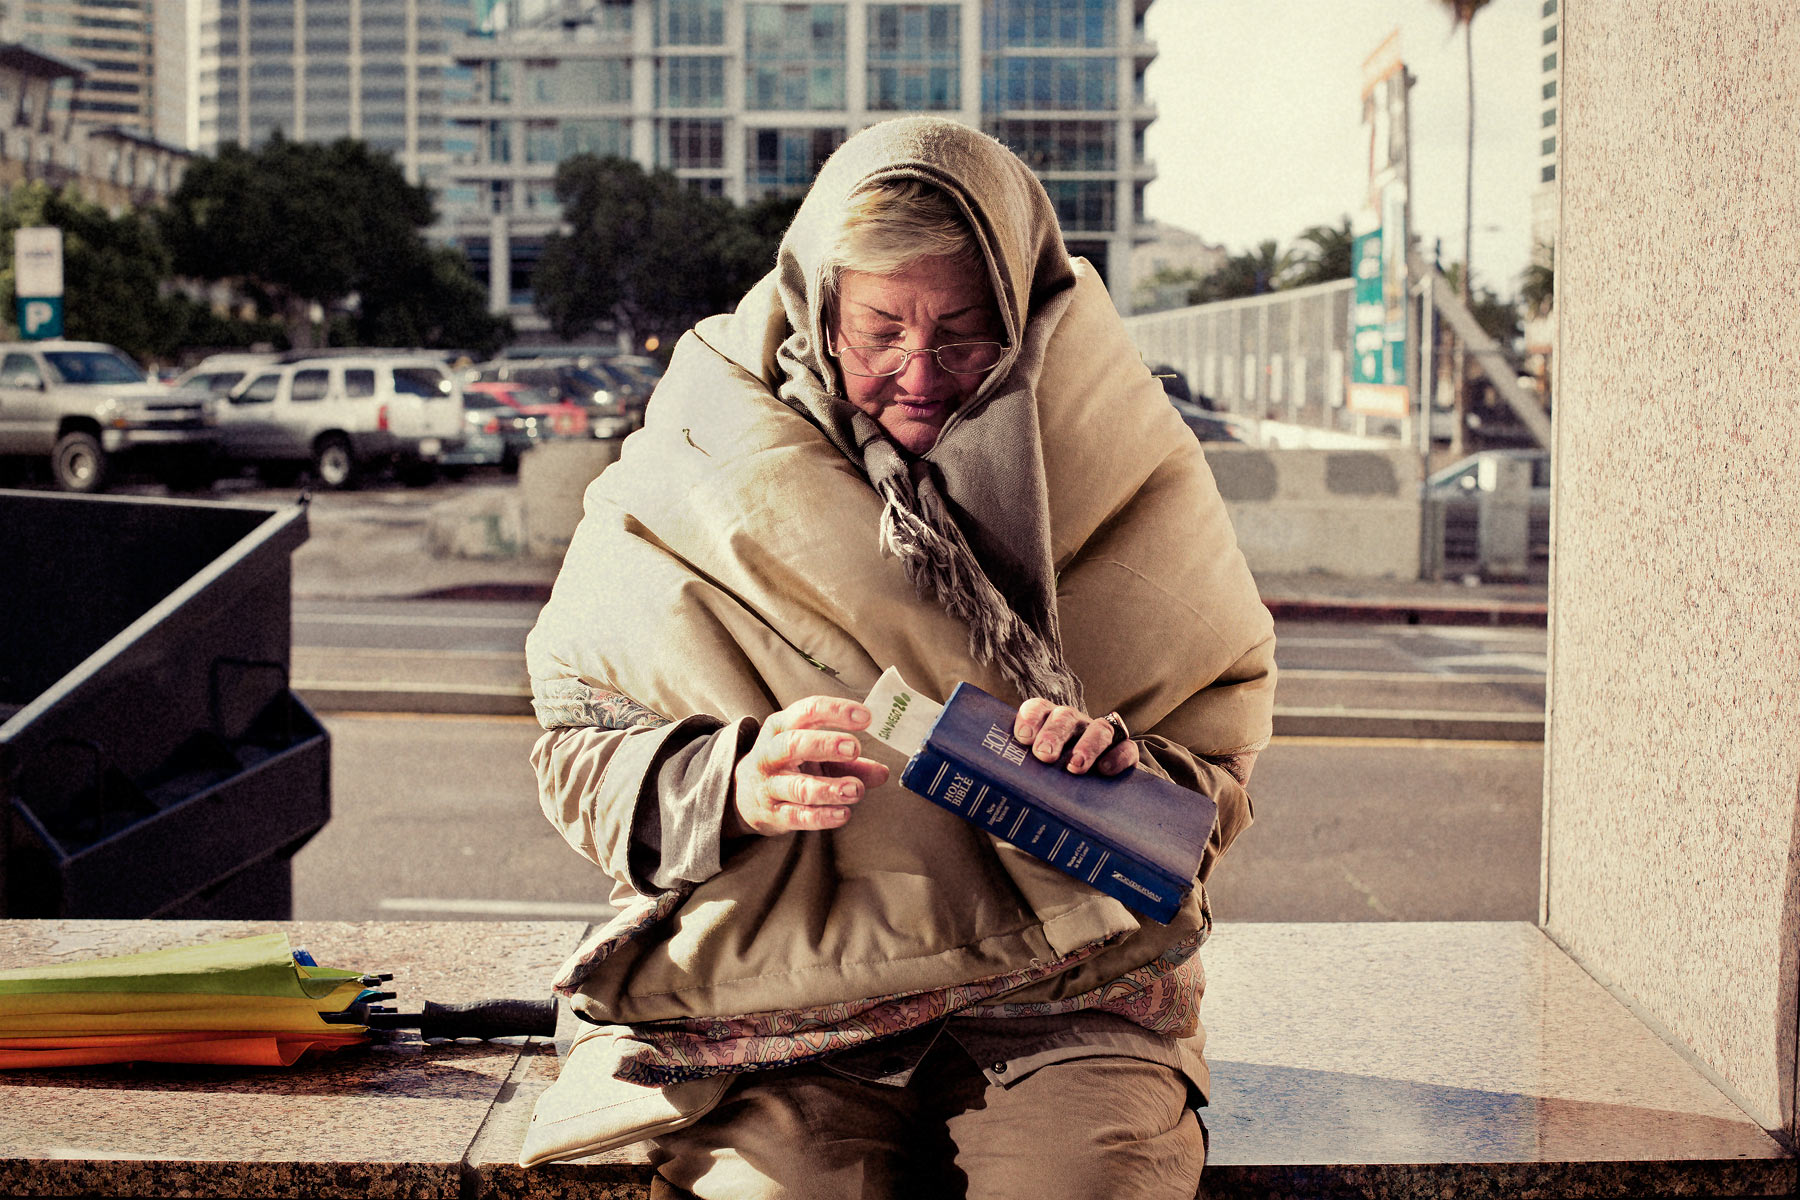 Good Boy Wolf Photographer, filmic portrait, homeless woman wrapped in blankets holding a bible